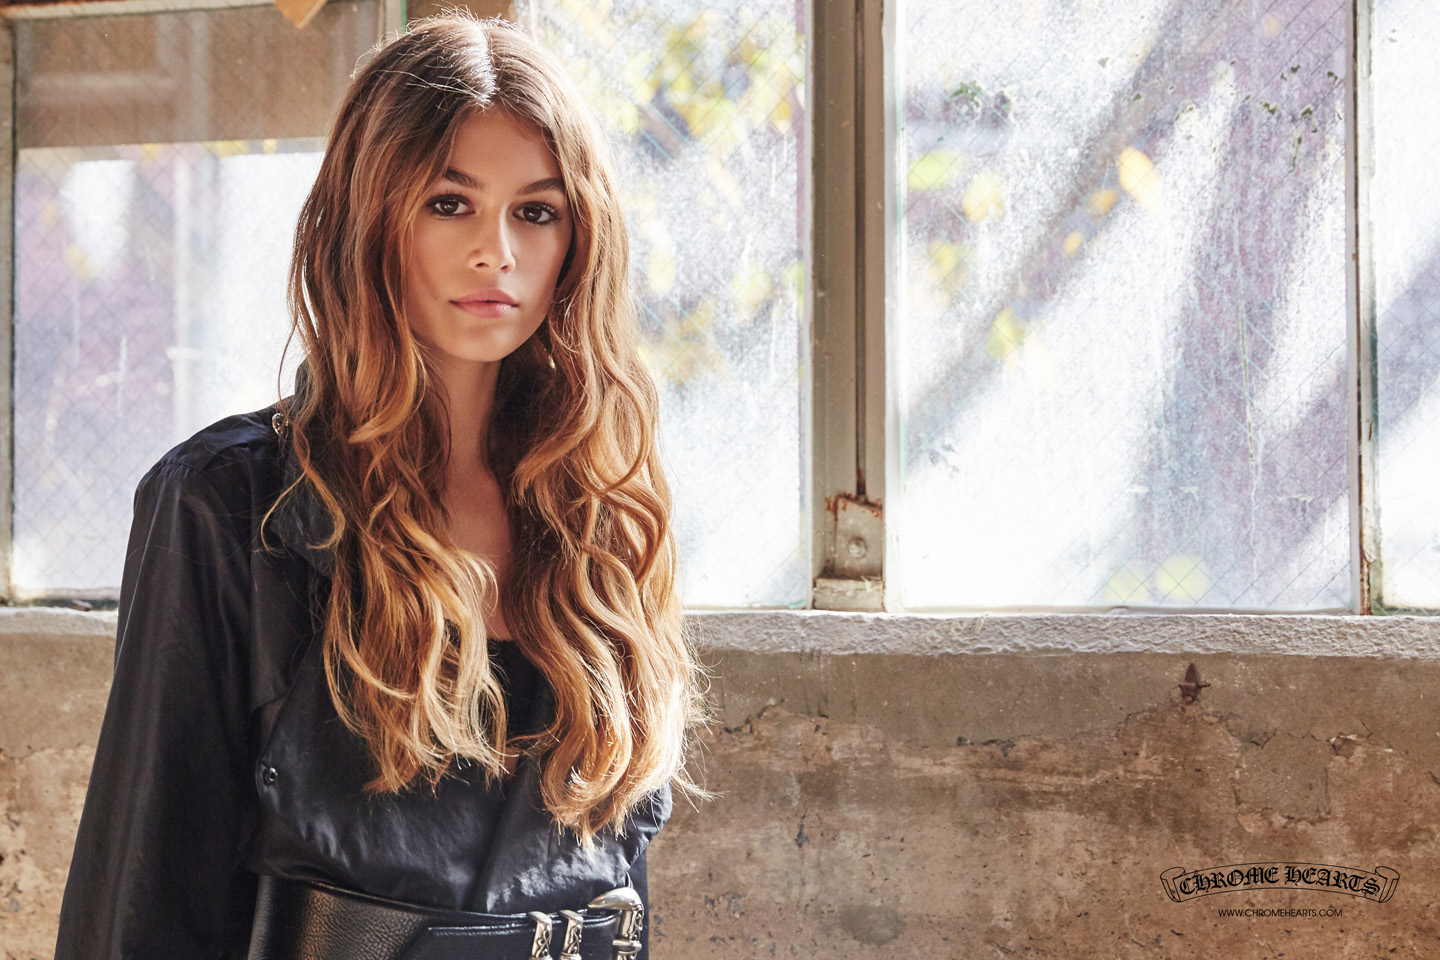 KAIA GERBER | CHROME HEARTS Photography by Laurie Lynn Stark